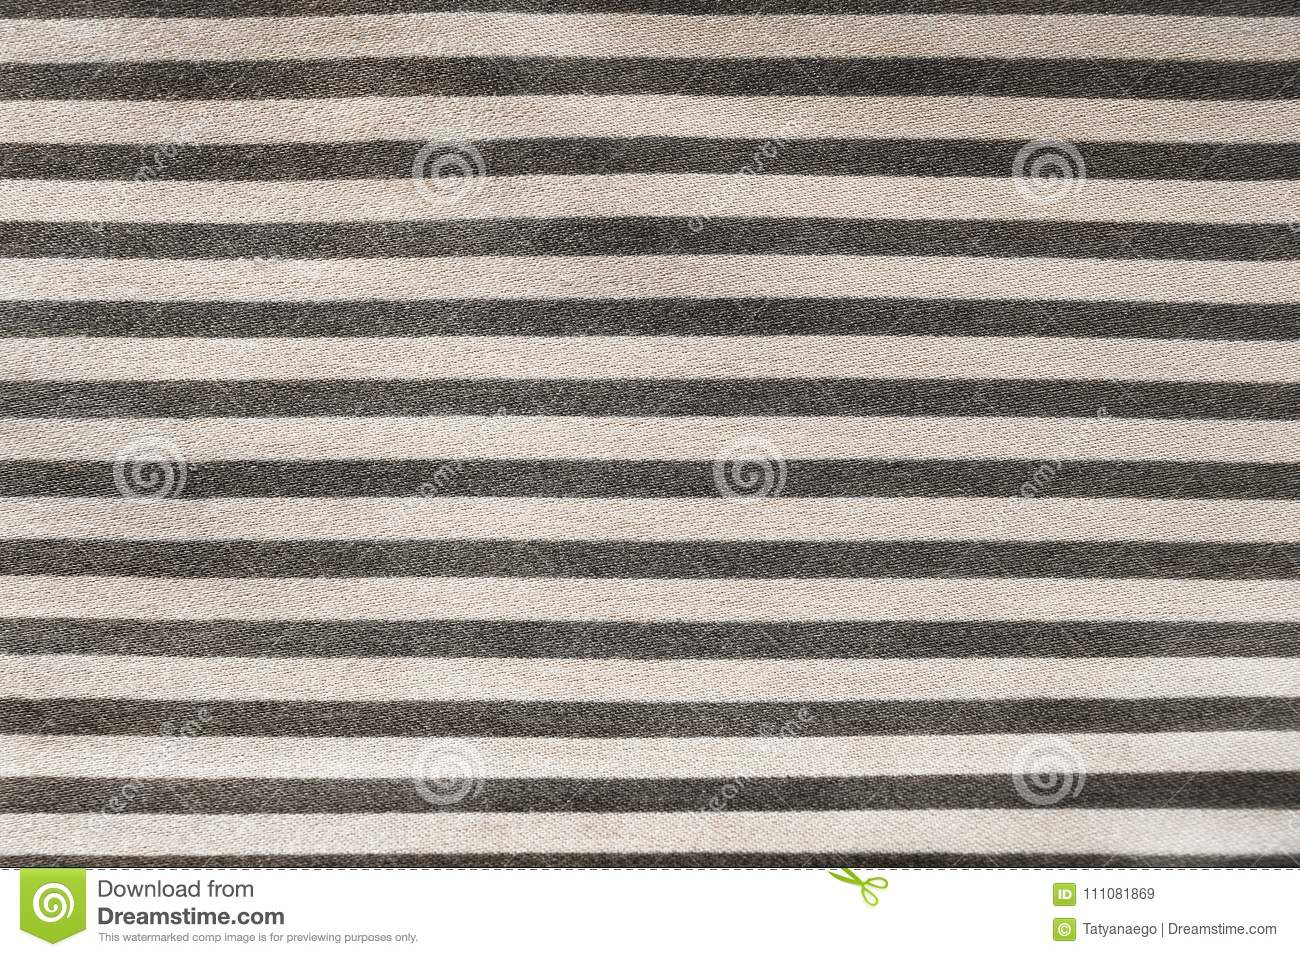 74ba64cc99e197 Striped satin texture stock image. Image of silk, industry - 111081869